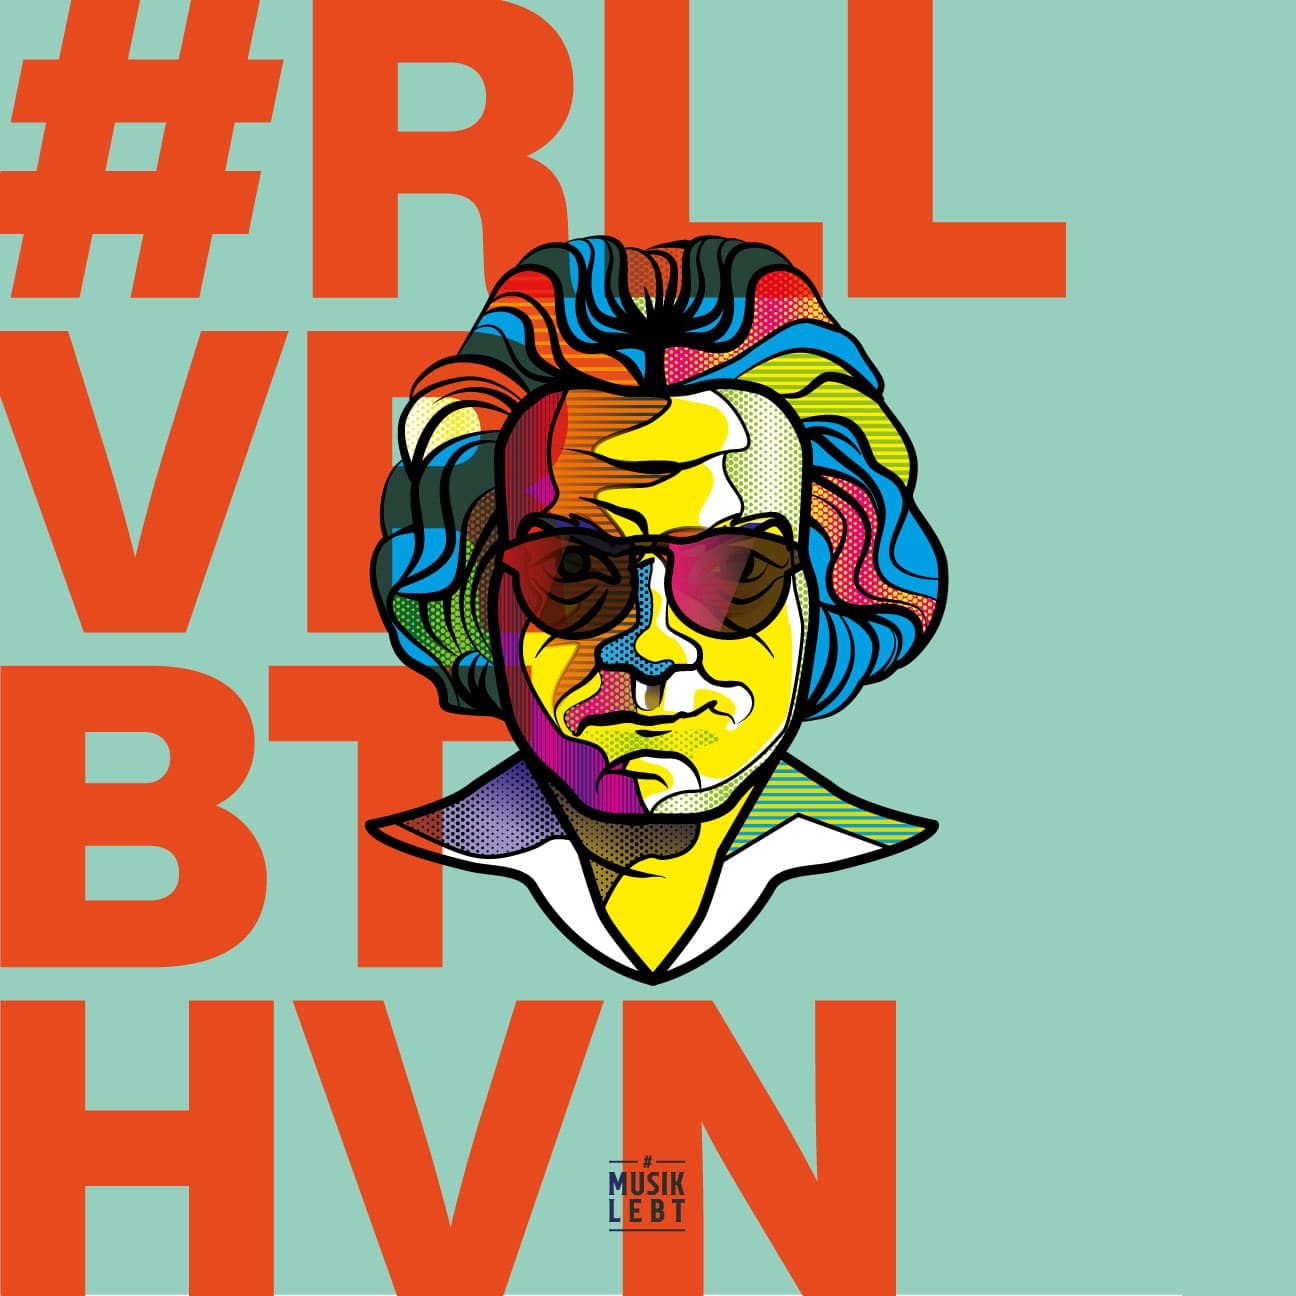 Ludwig van Beethoven – make the world smile again